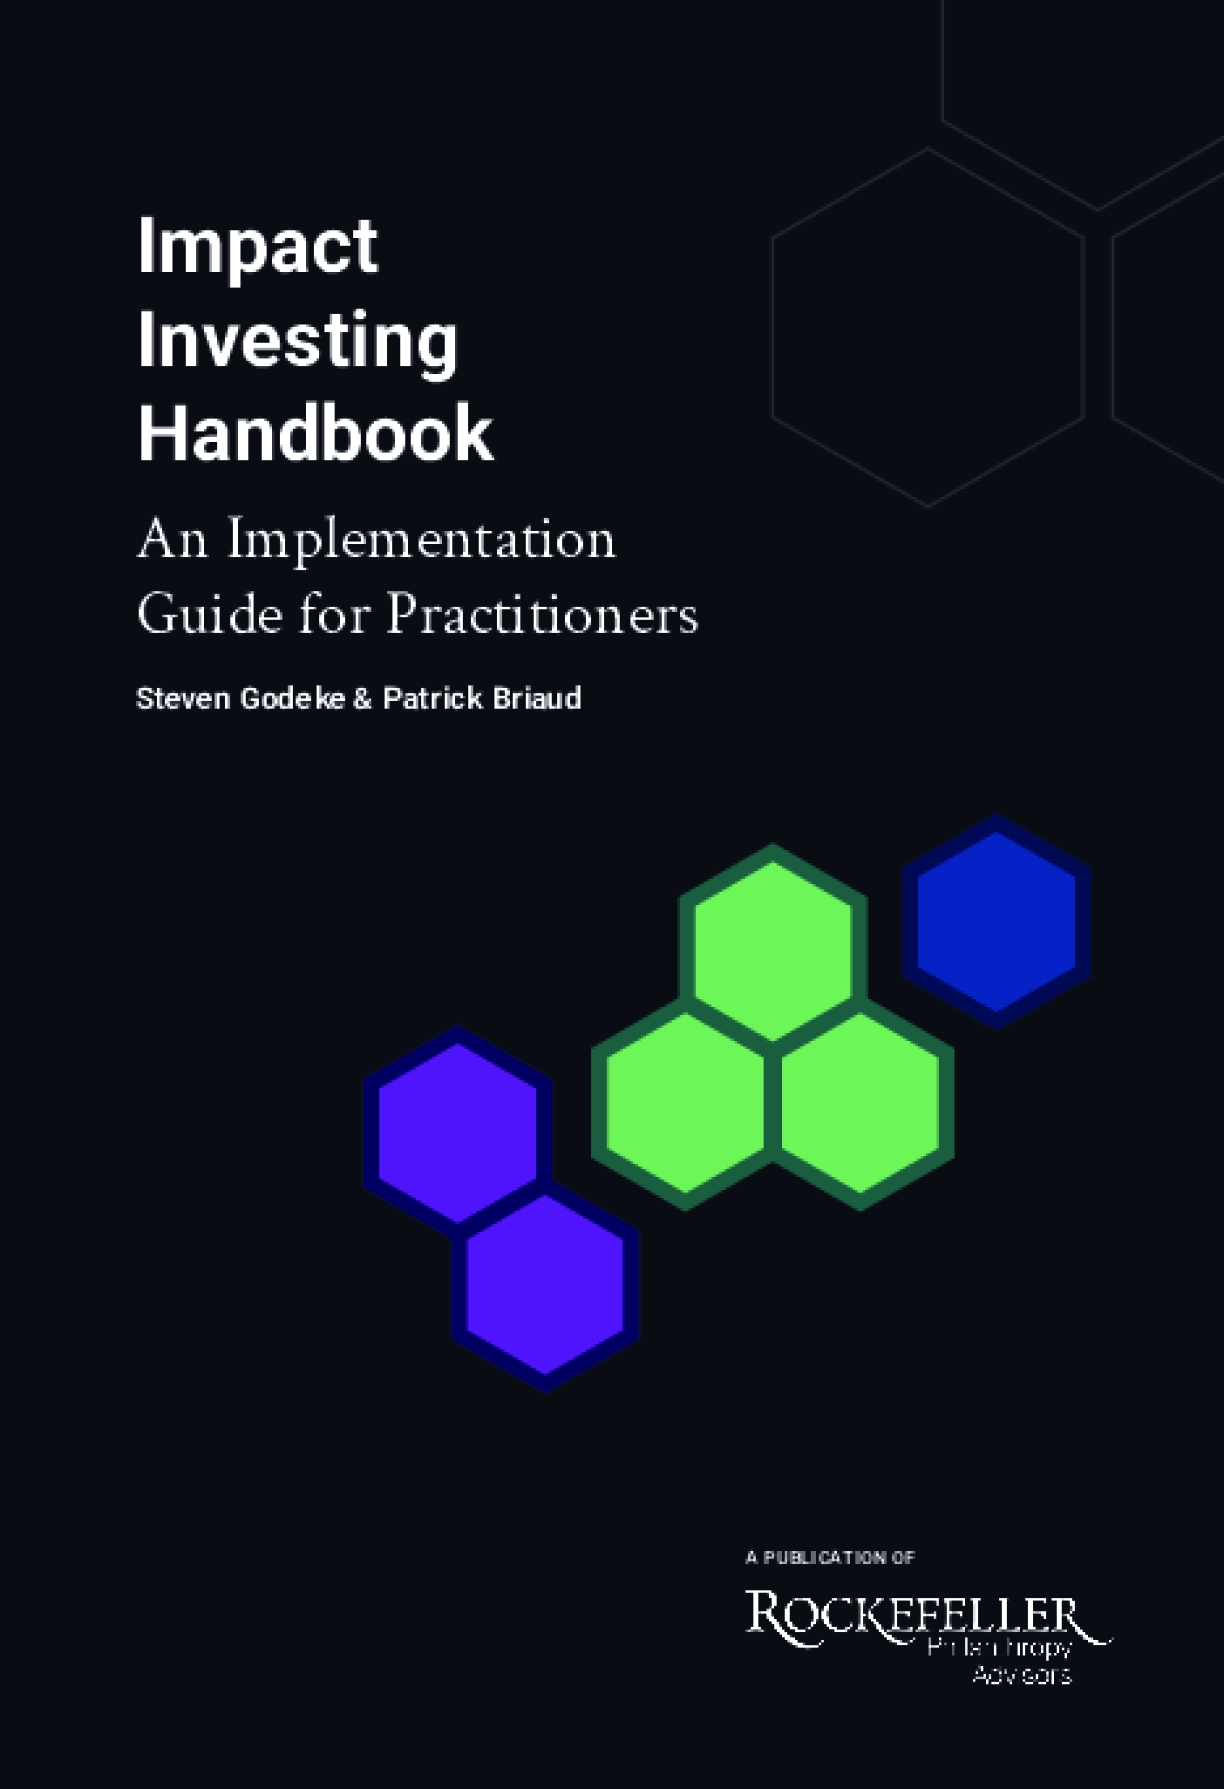 Impact Investing Handbook: An Implementation Guide for Practitioners